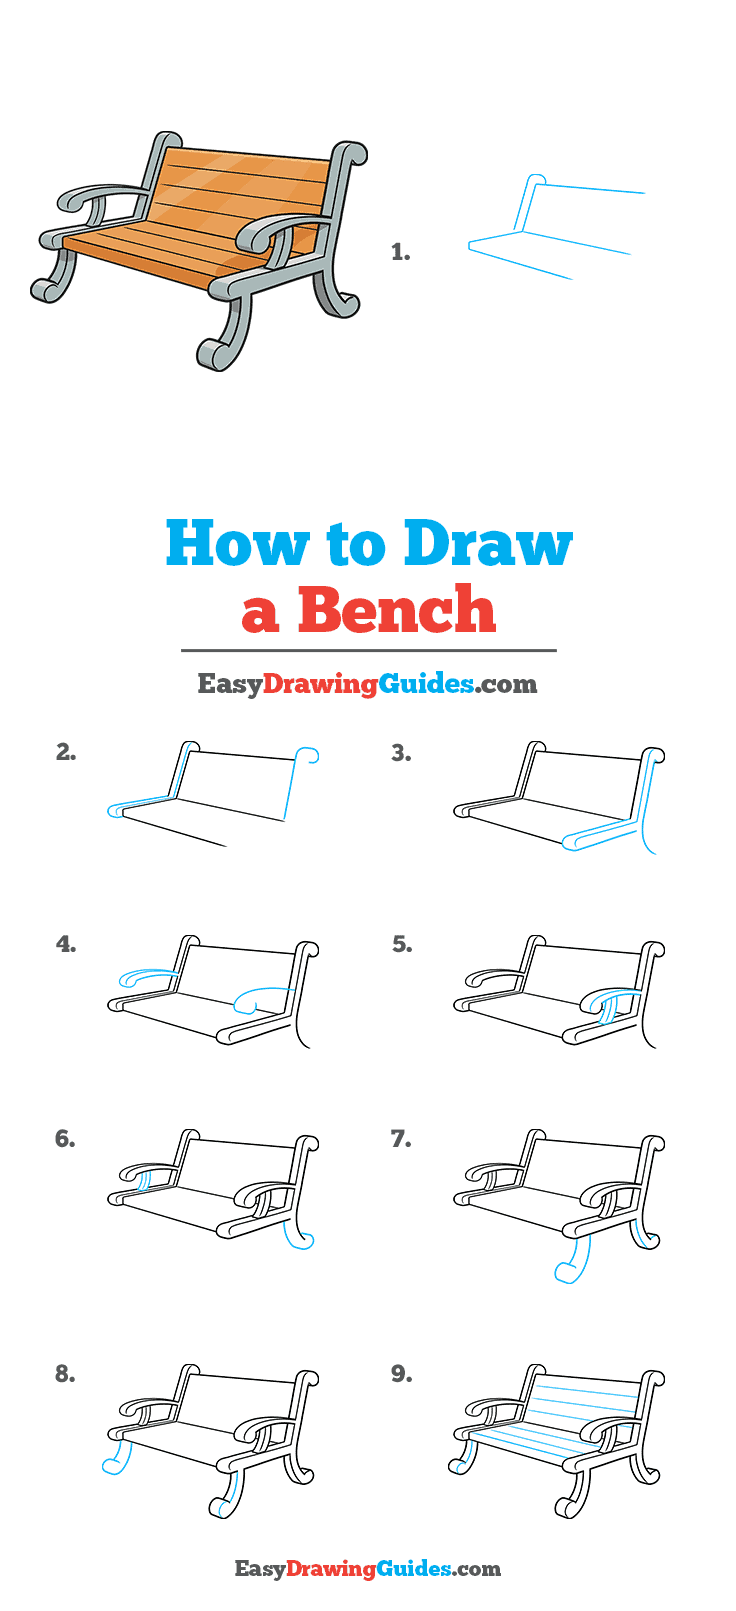 How to Draw a Bench Step by Step Tutorial Image